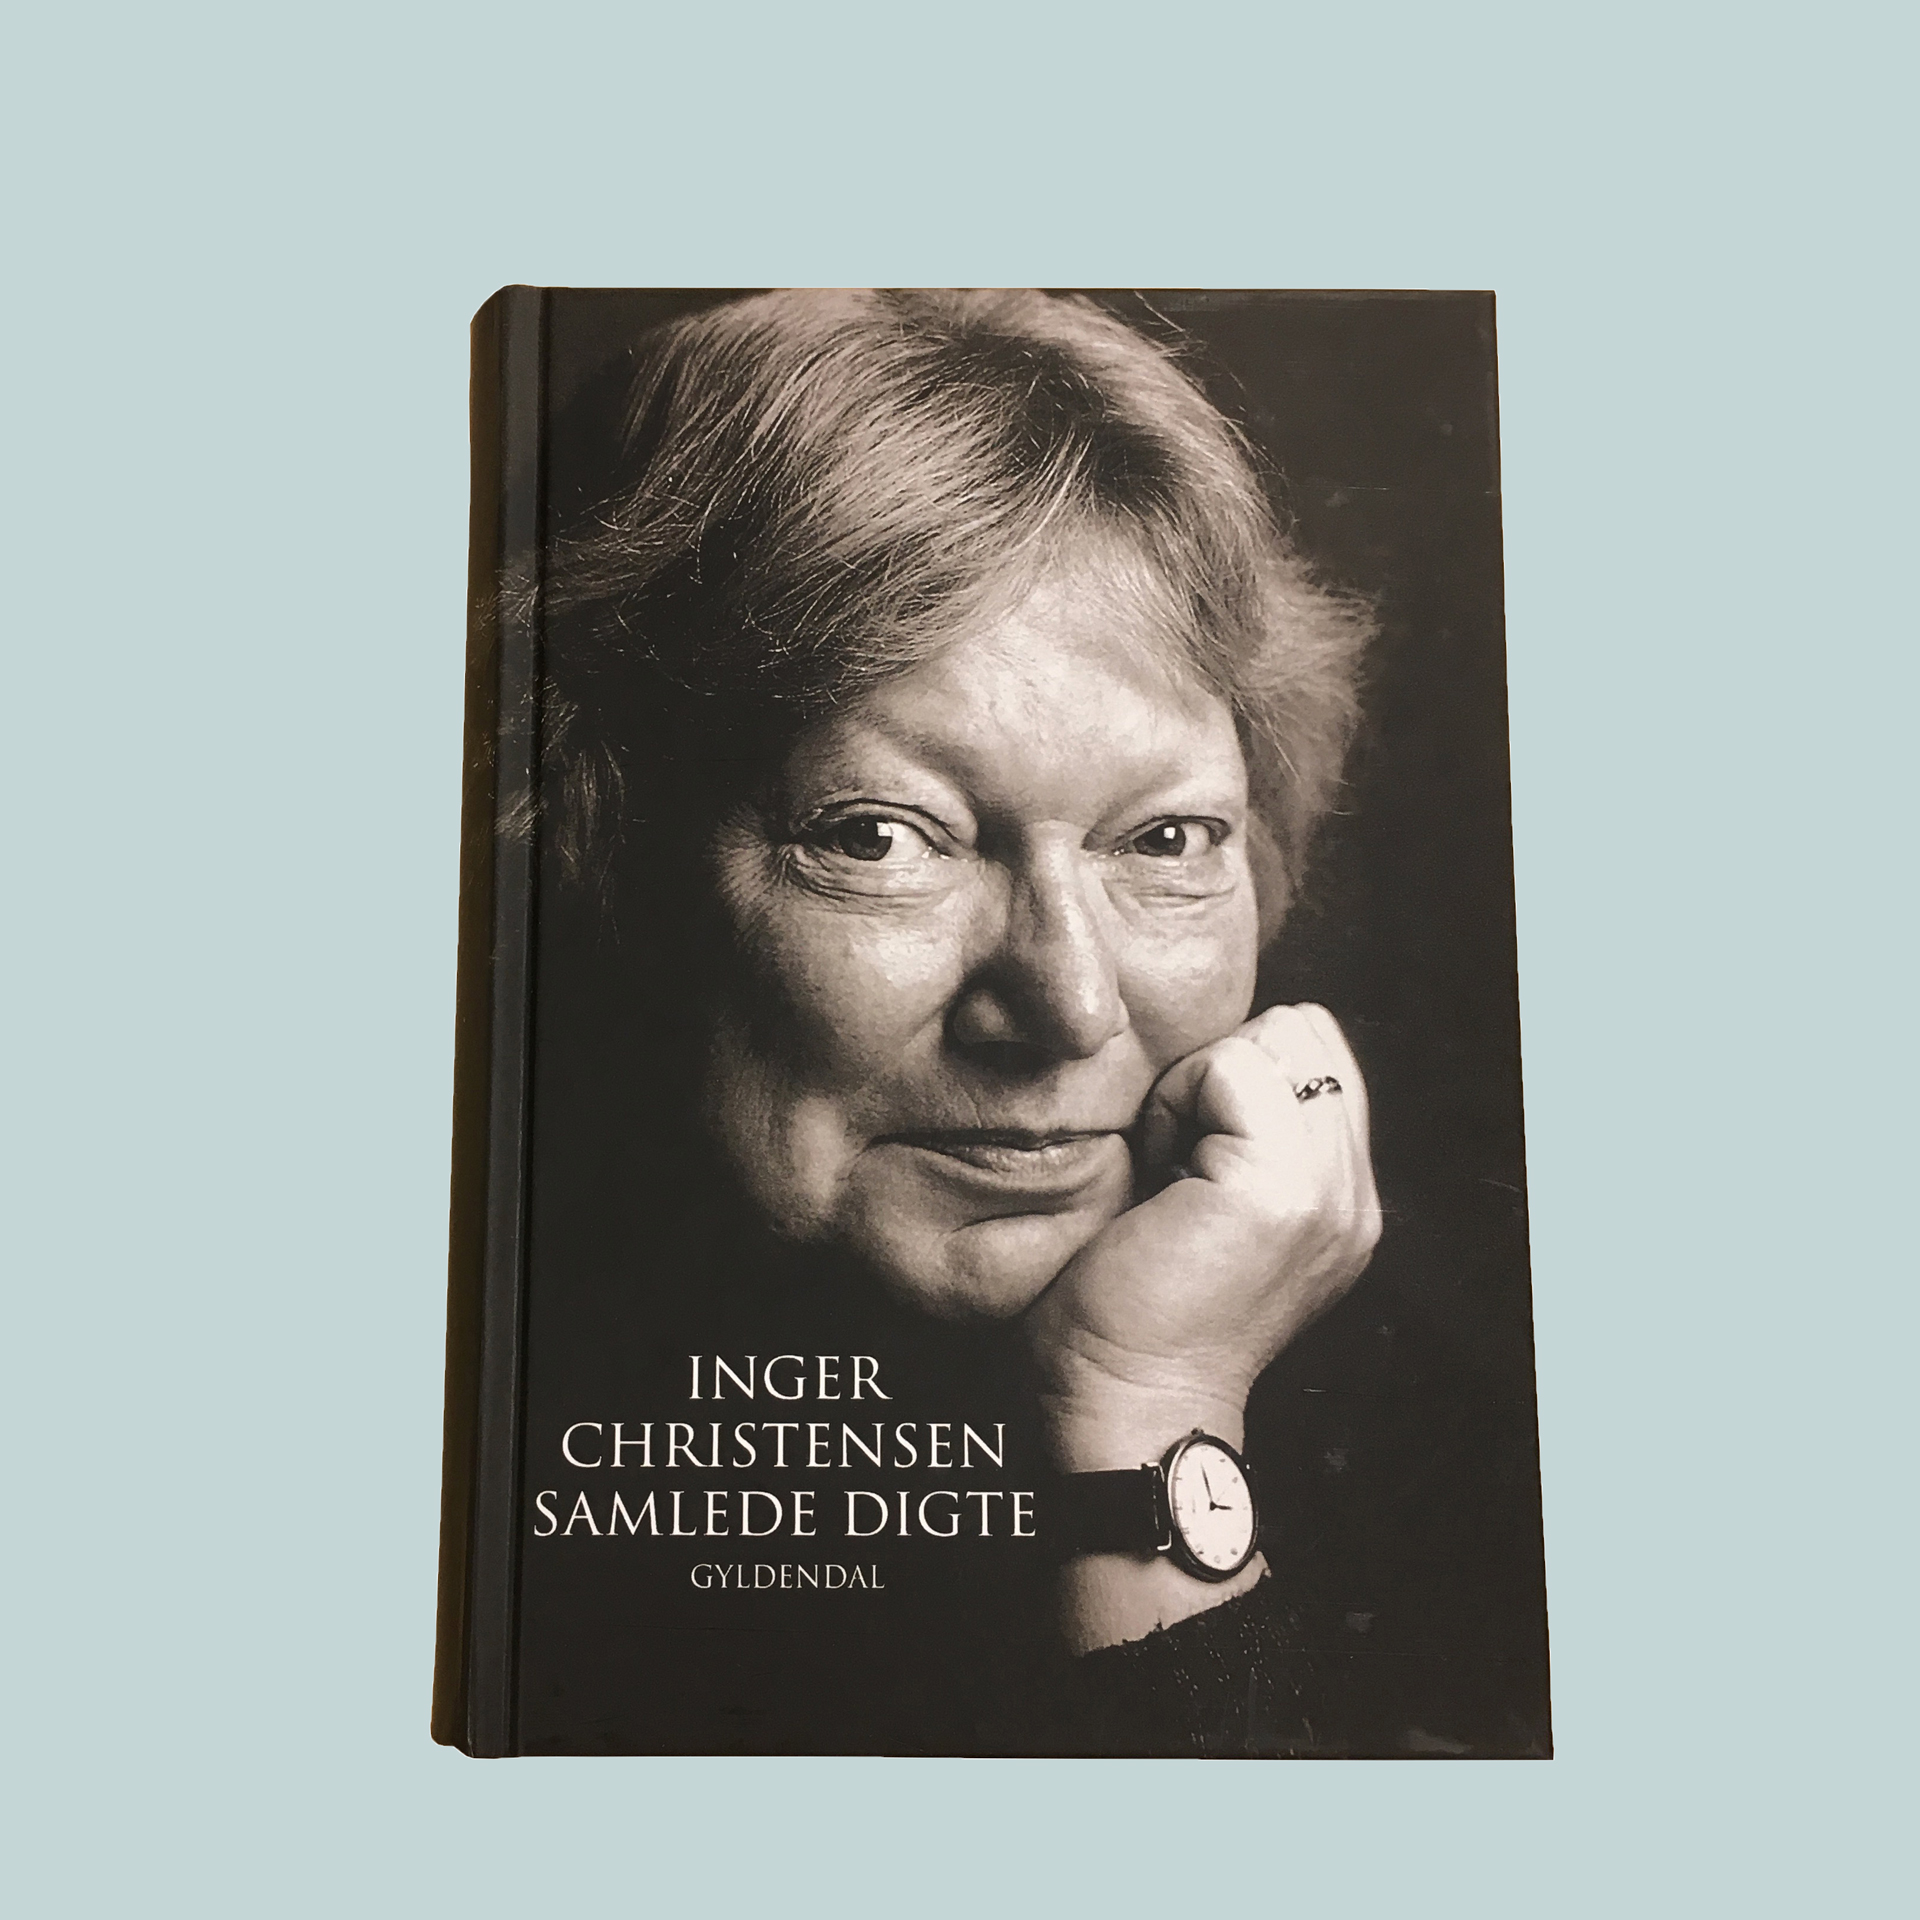 A Very Short Review of the Book Christine